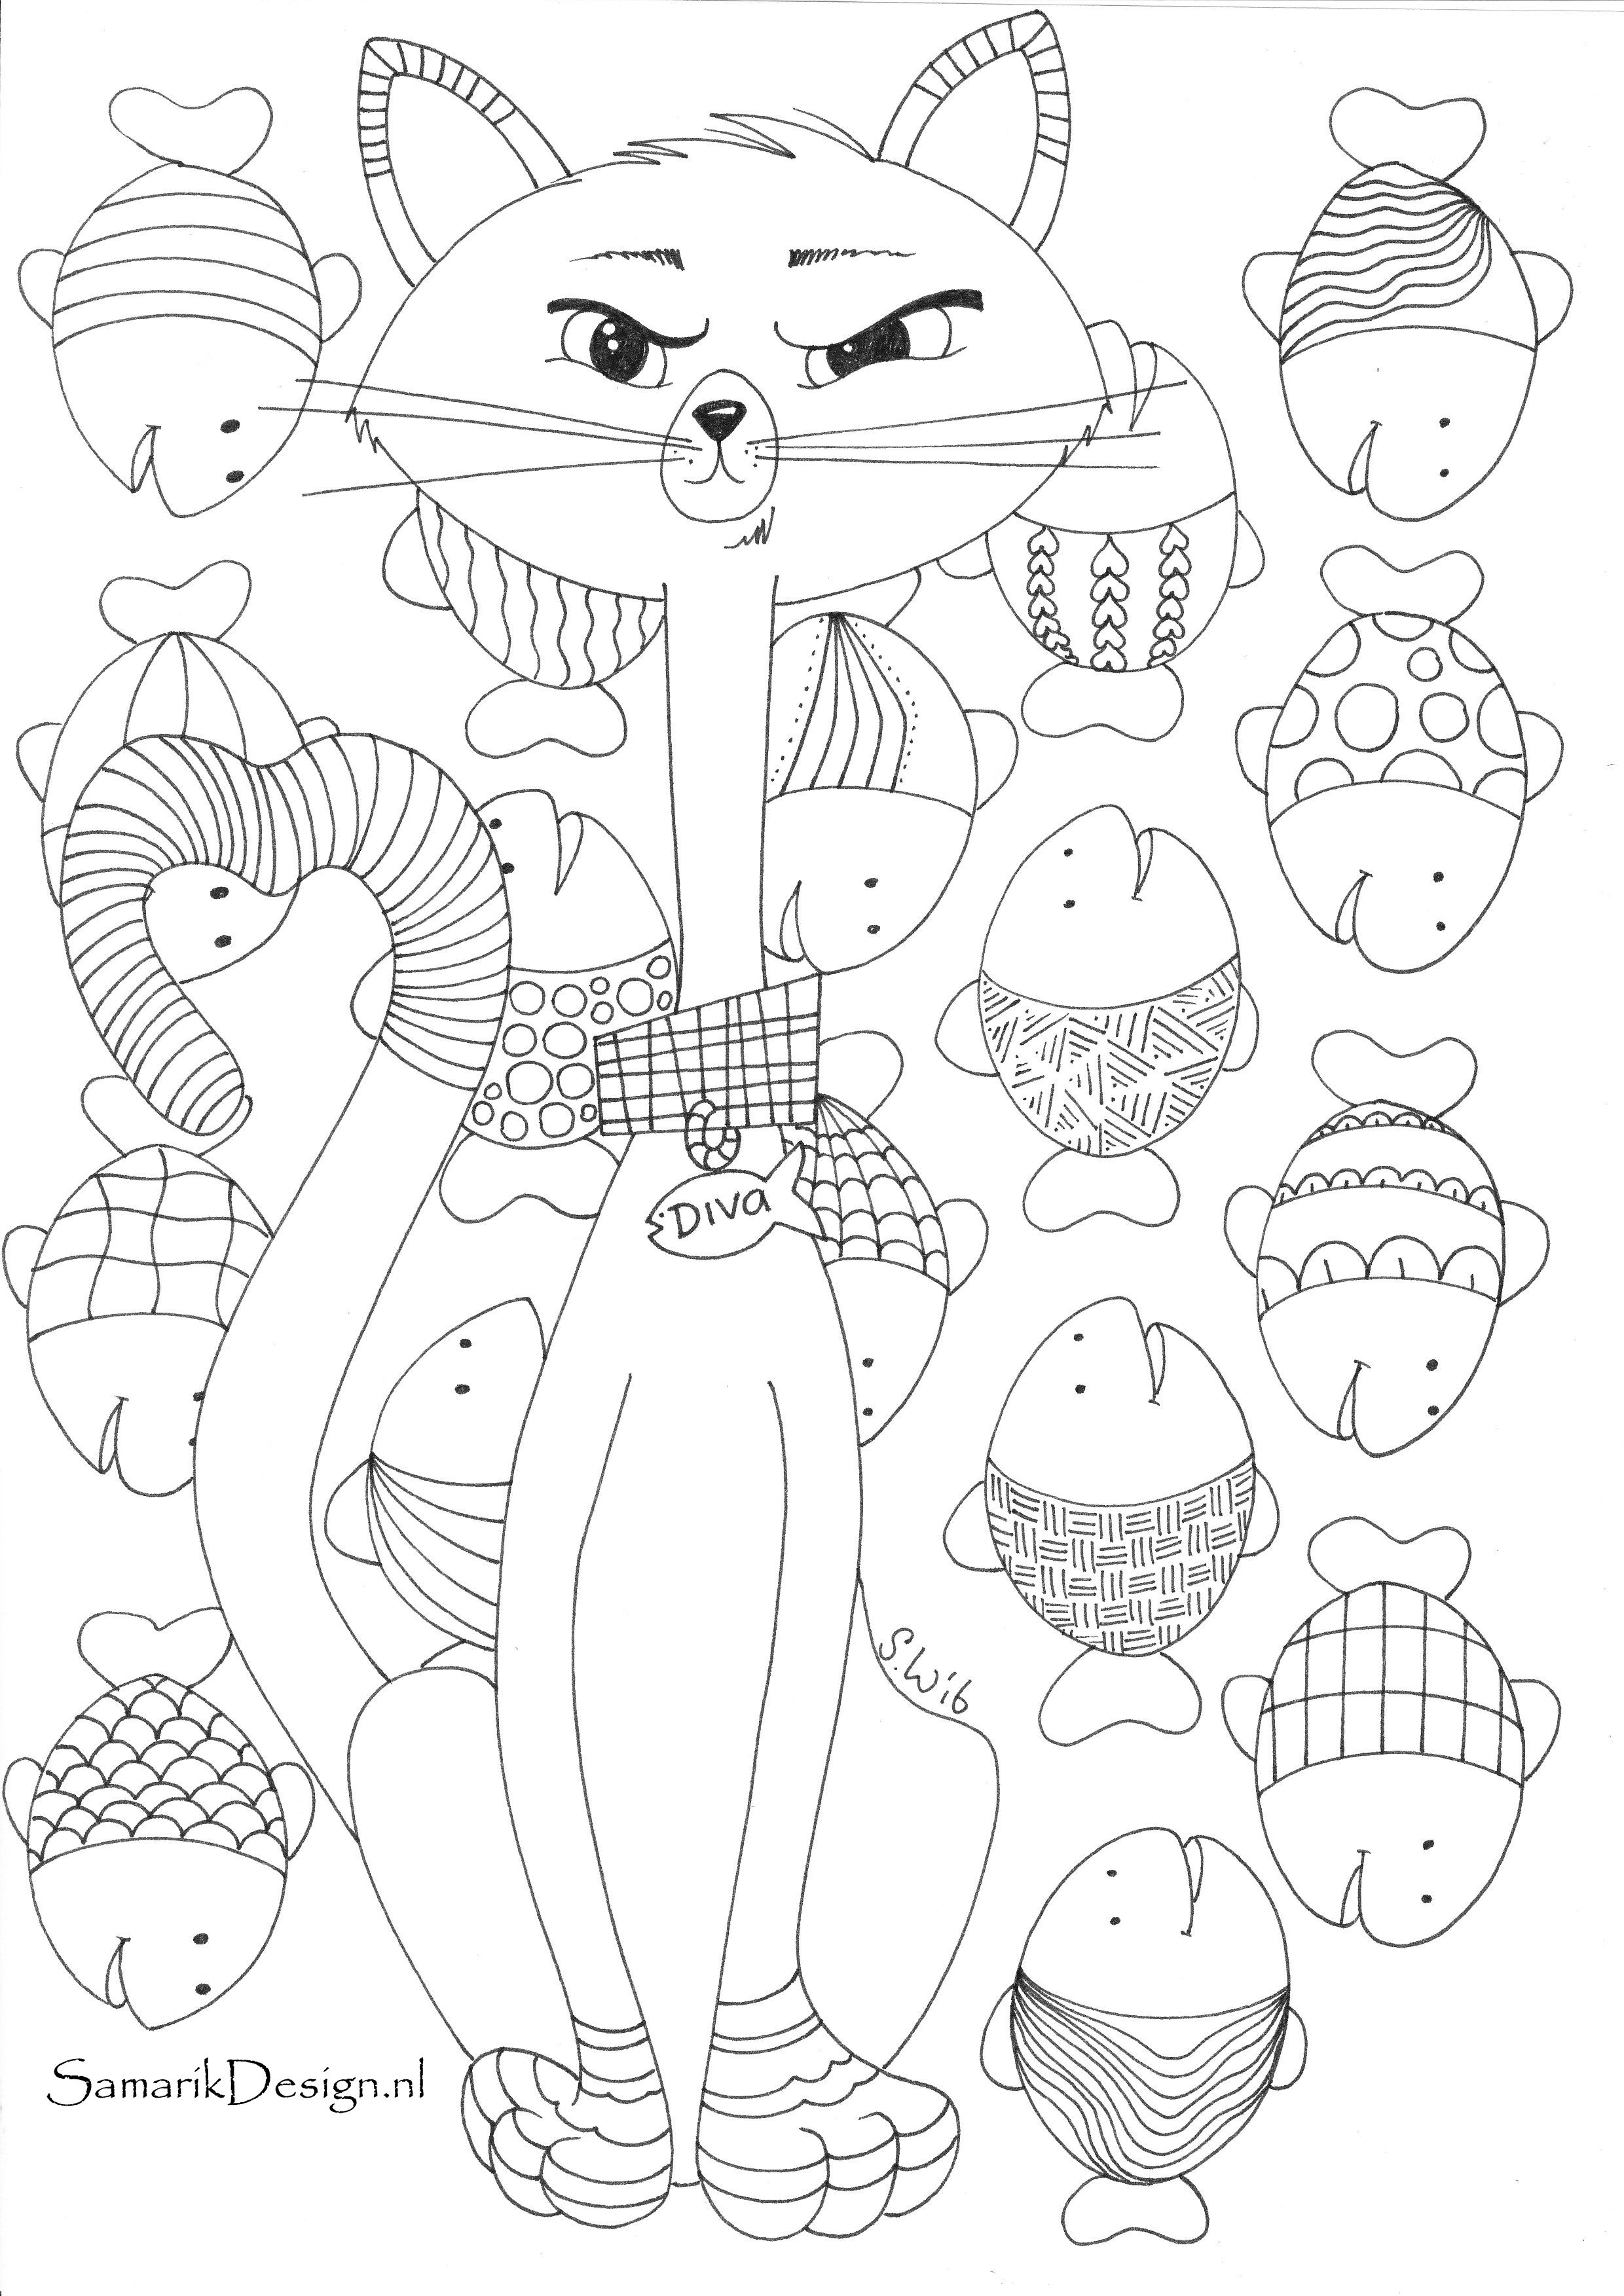 Cat coloring page | Cat coloring page, Dog coloring page ...